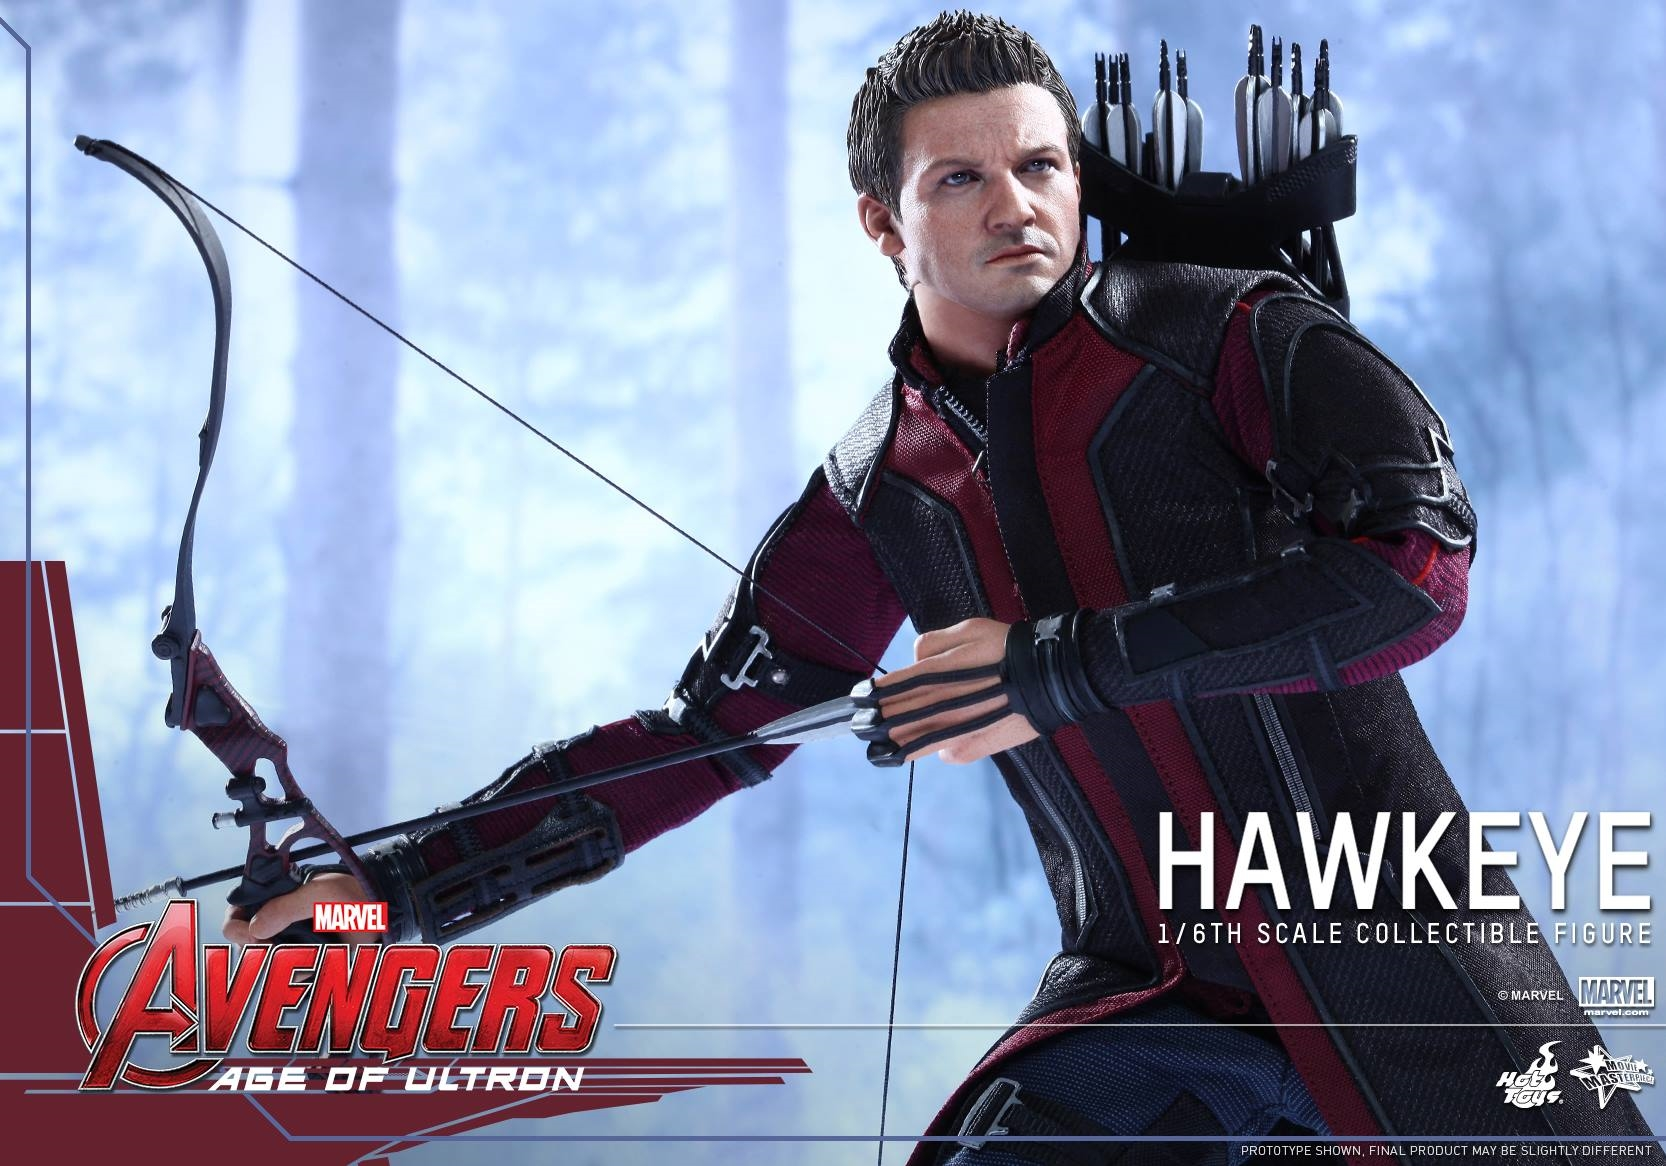 Hawkeye Marvel Avengers Wallpaper